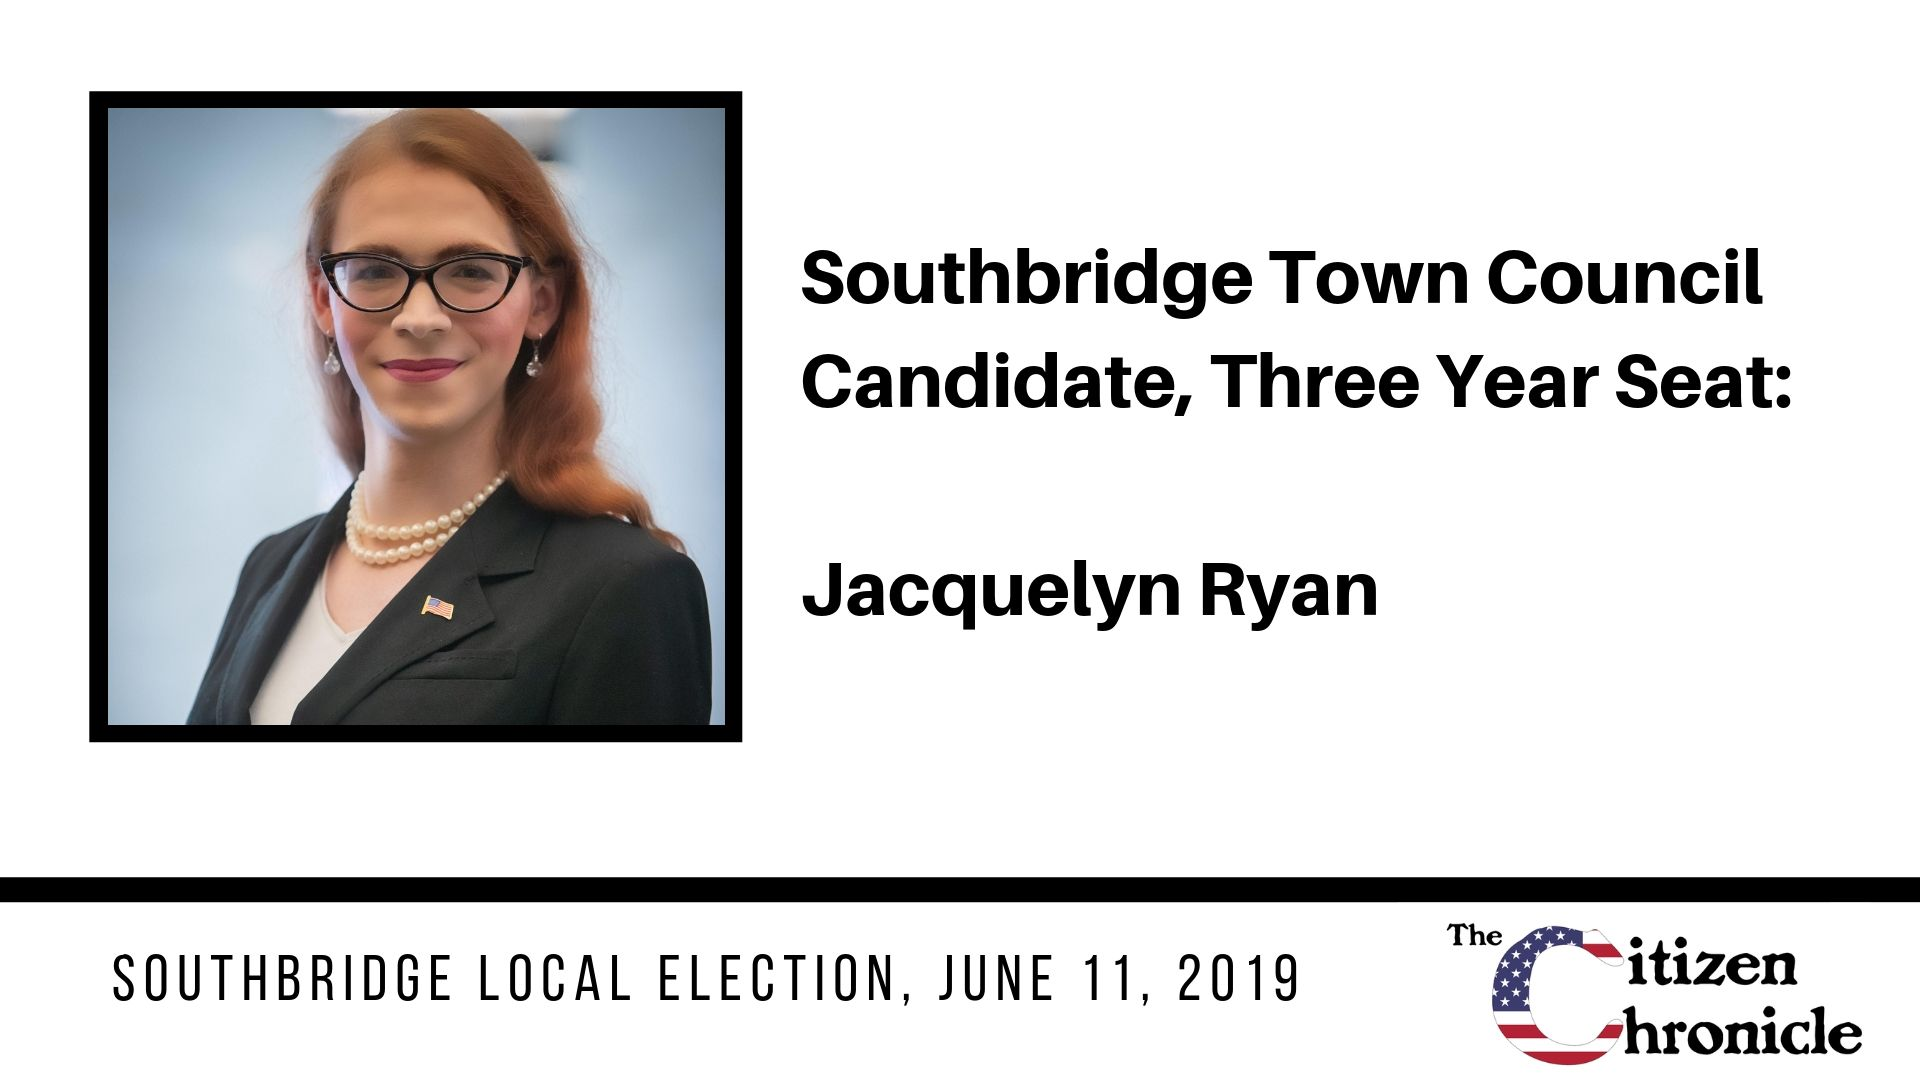 Southbridge Local Election: Letter from Jacquelyn Ryan